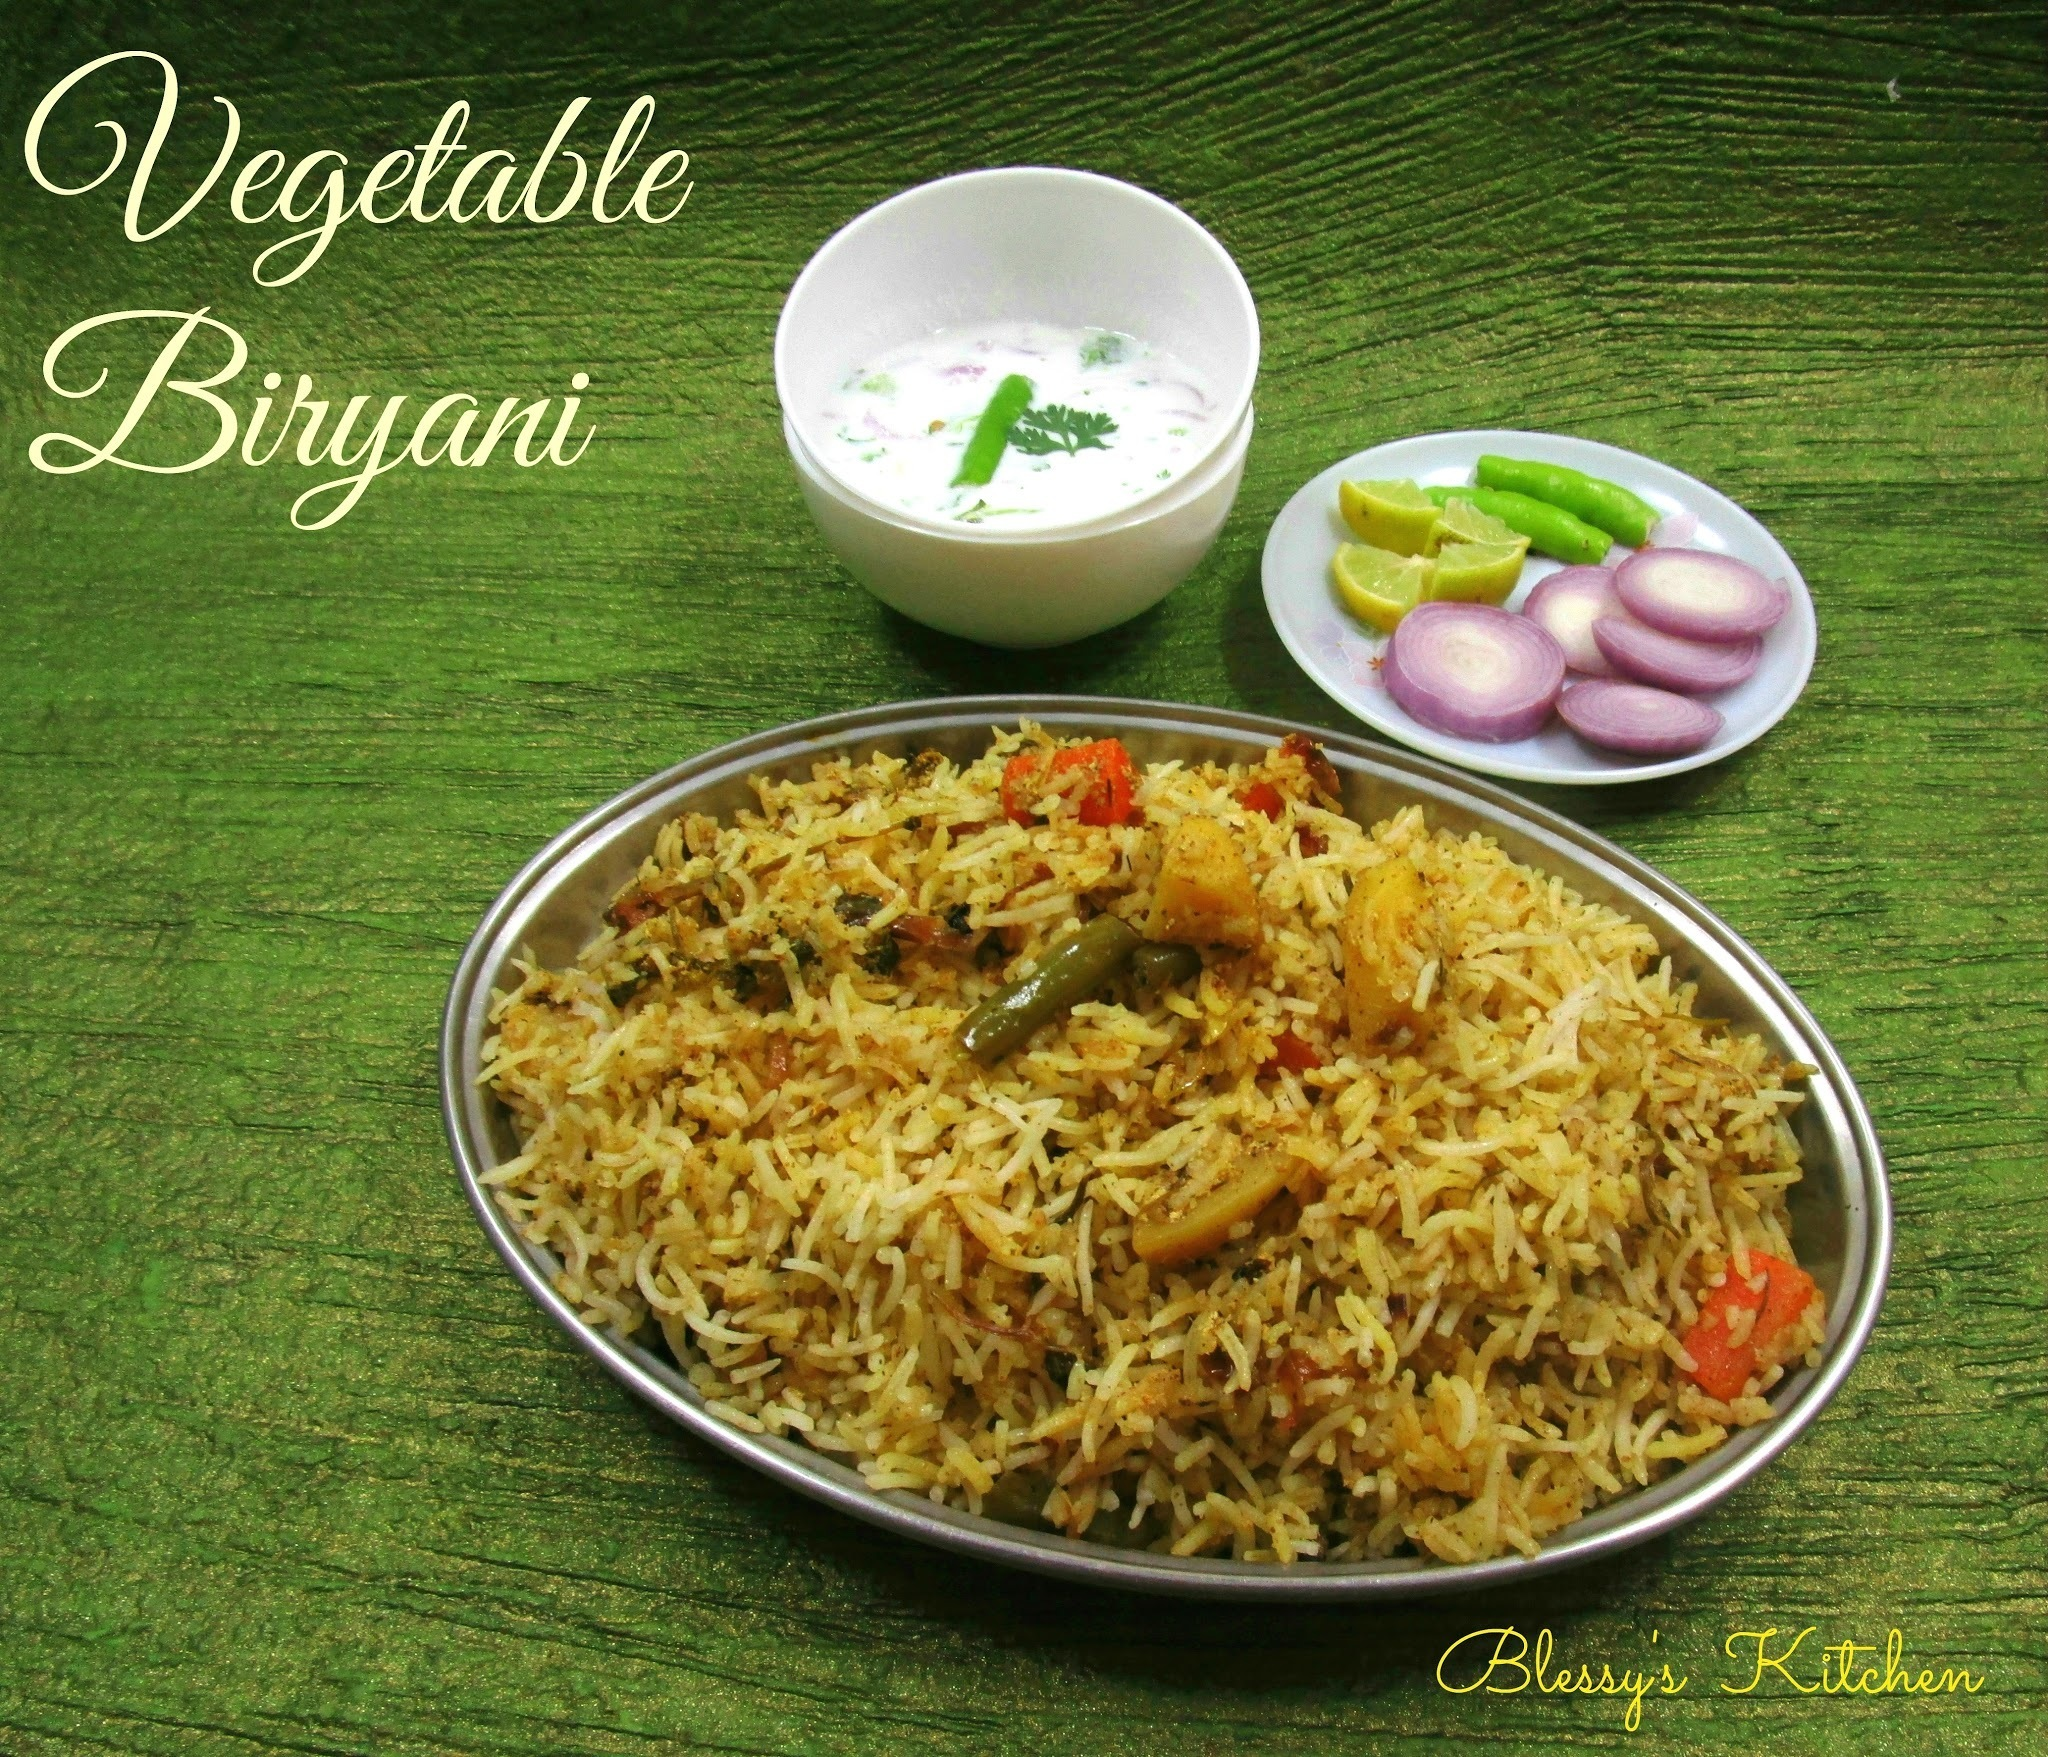 Vegetable Biryani/Veg Biryani - The Hyderabadi Way